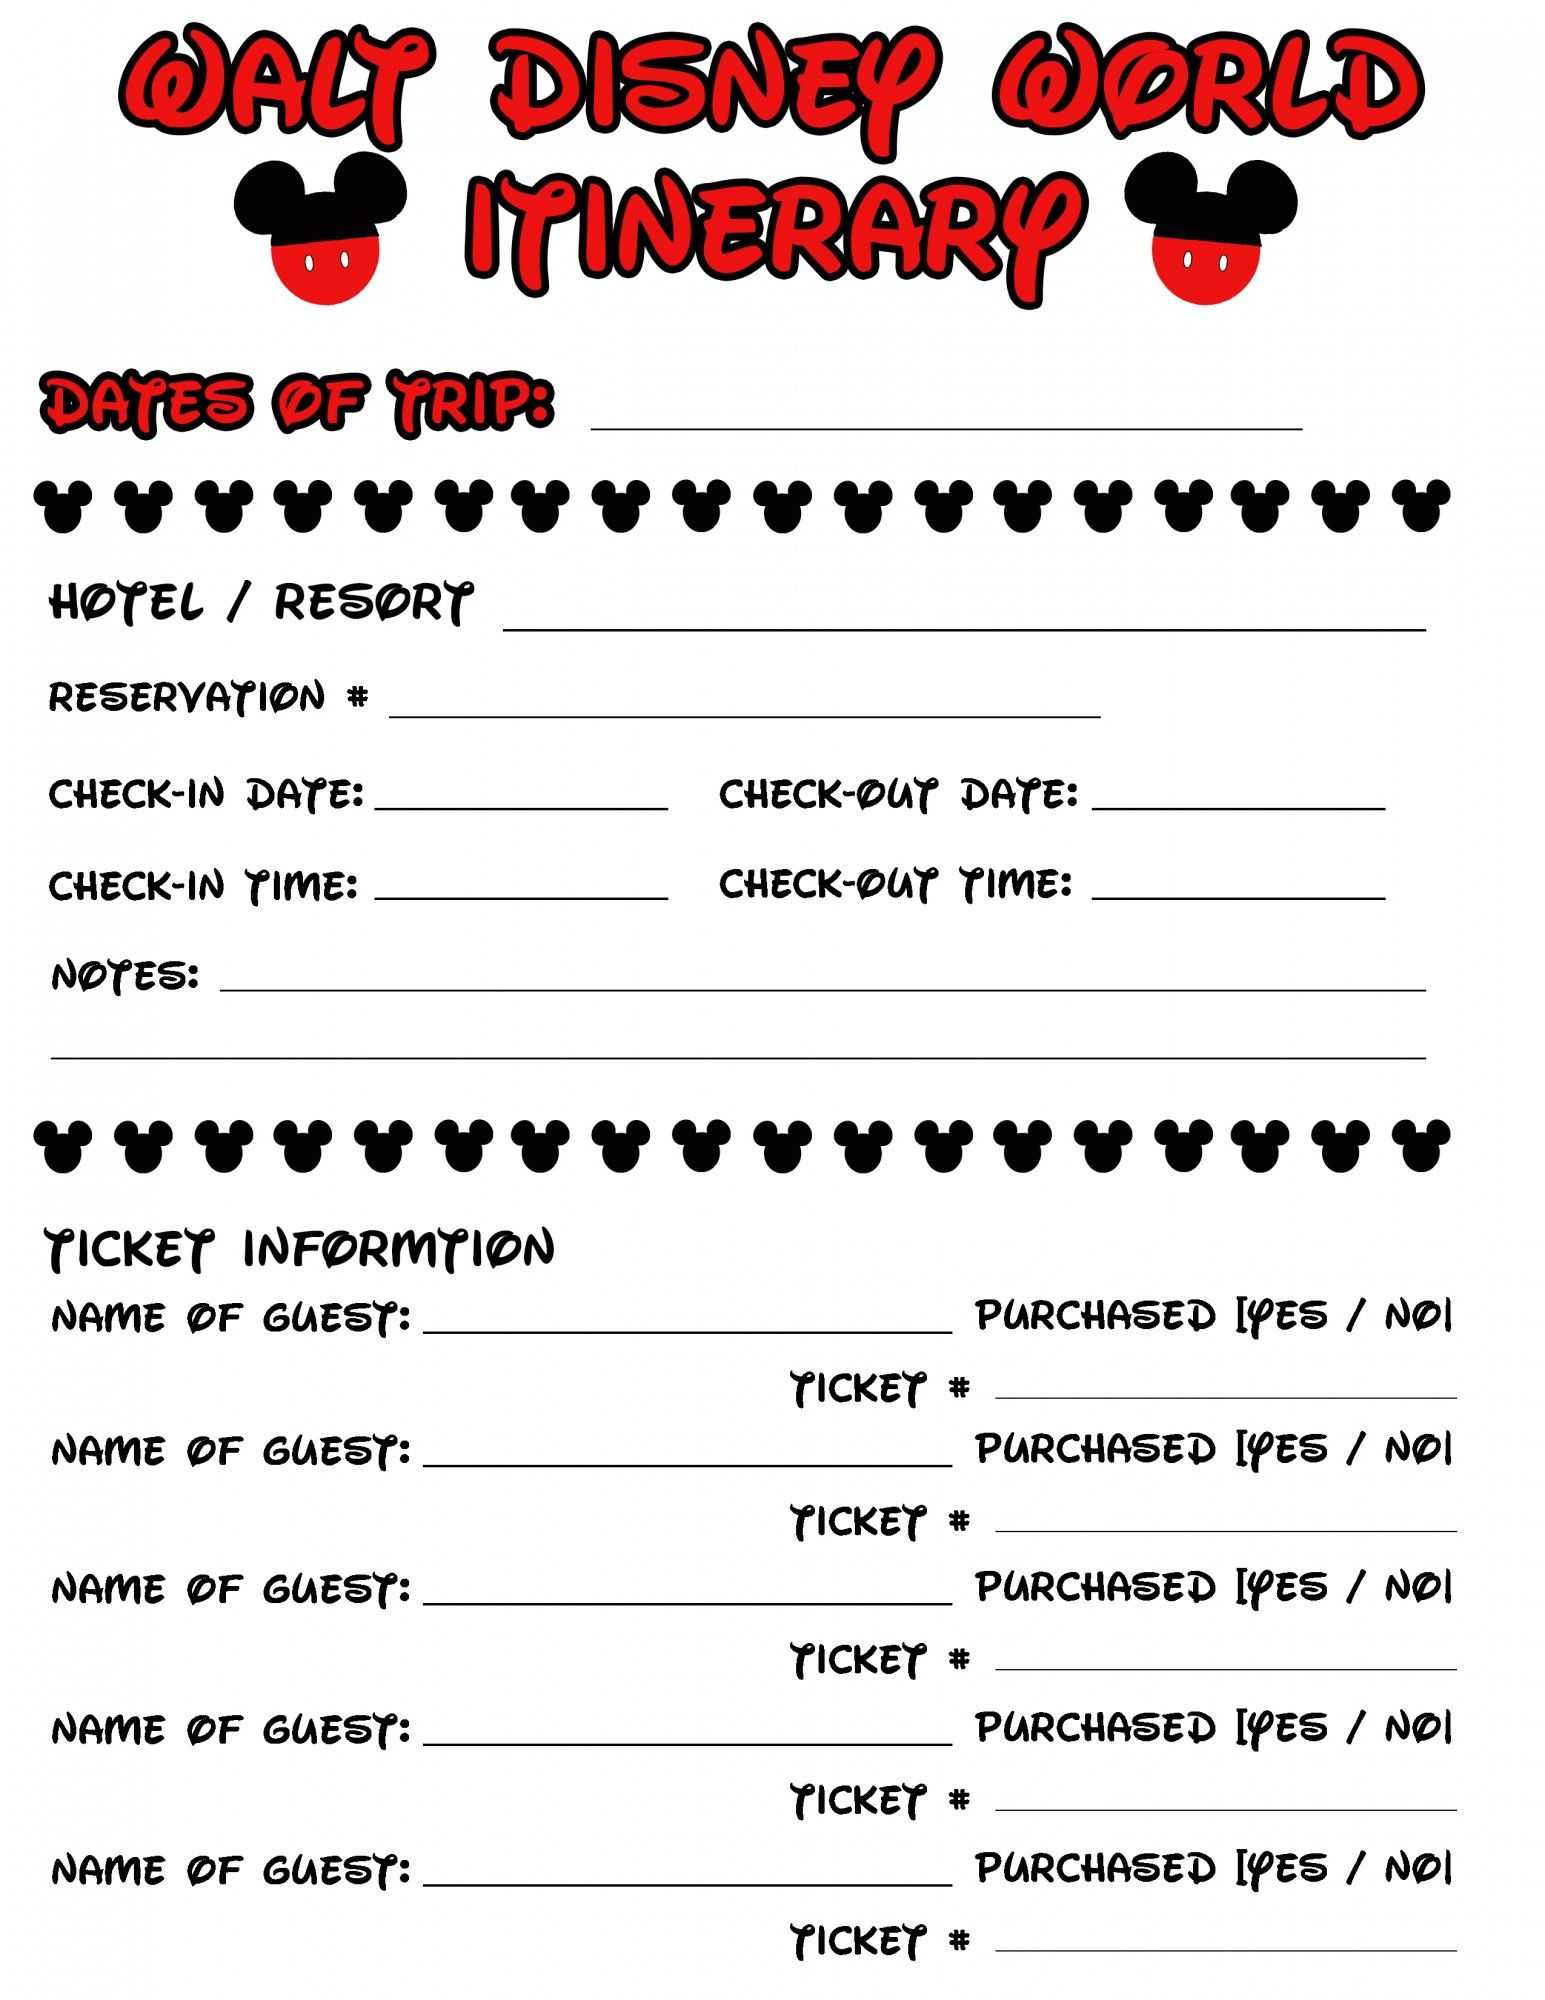 disney agenda itinerary free printable disney vacations vacation and disney trips. Black Bedroom Furniture Sets. Home Design Ideas